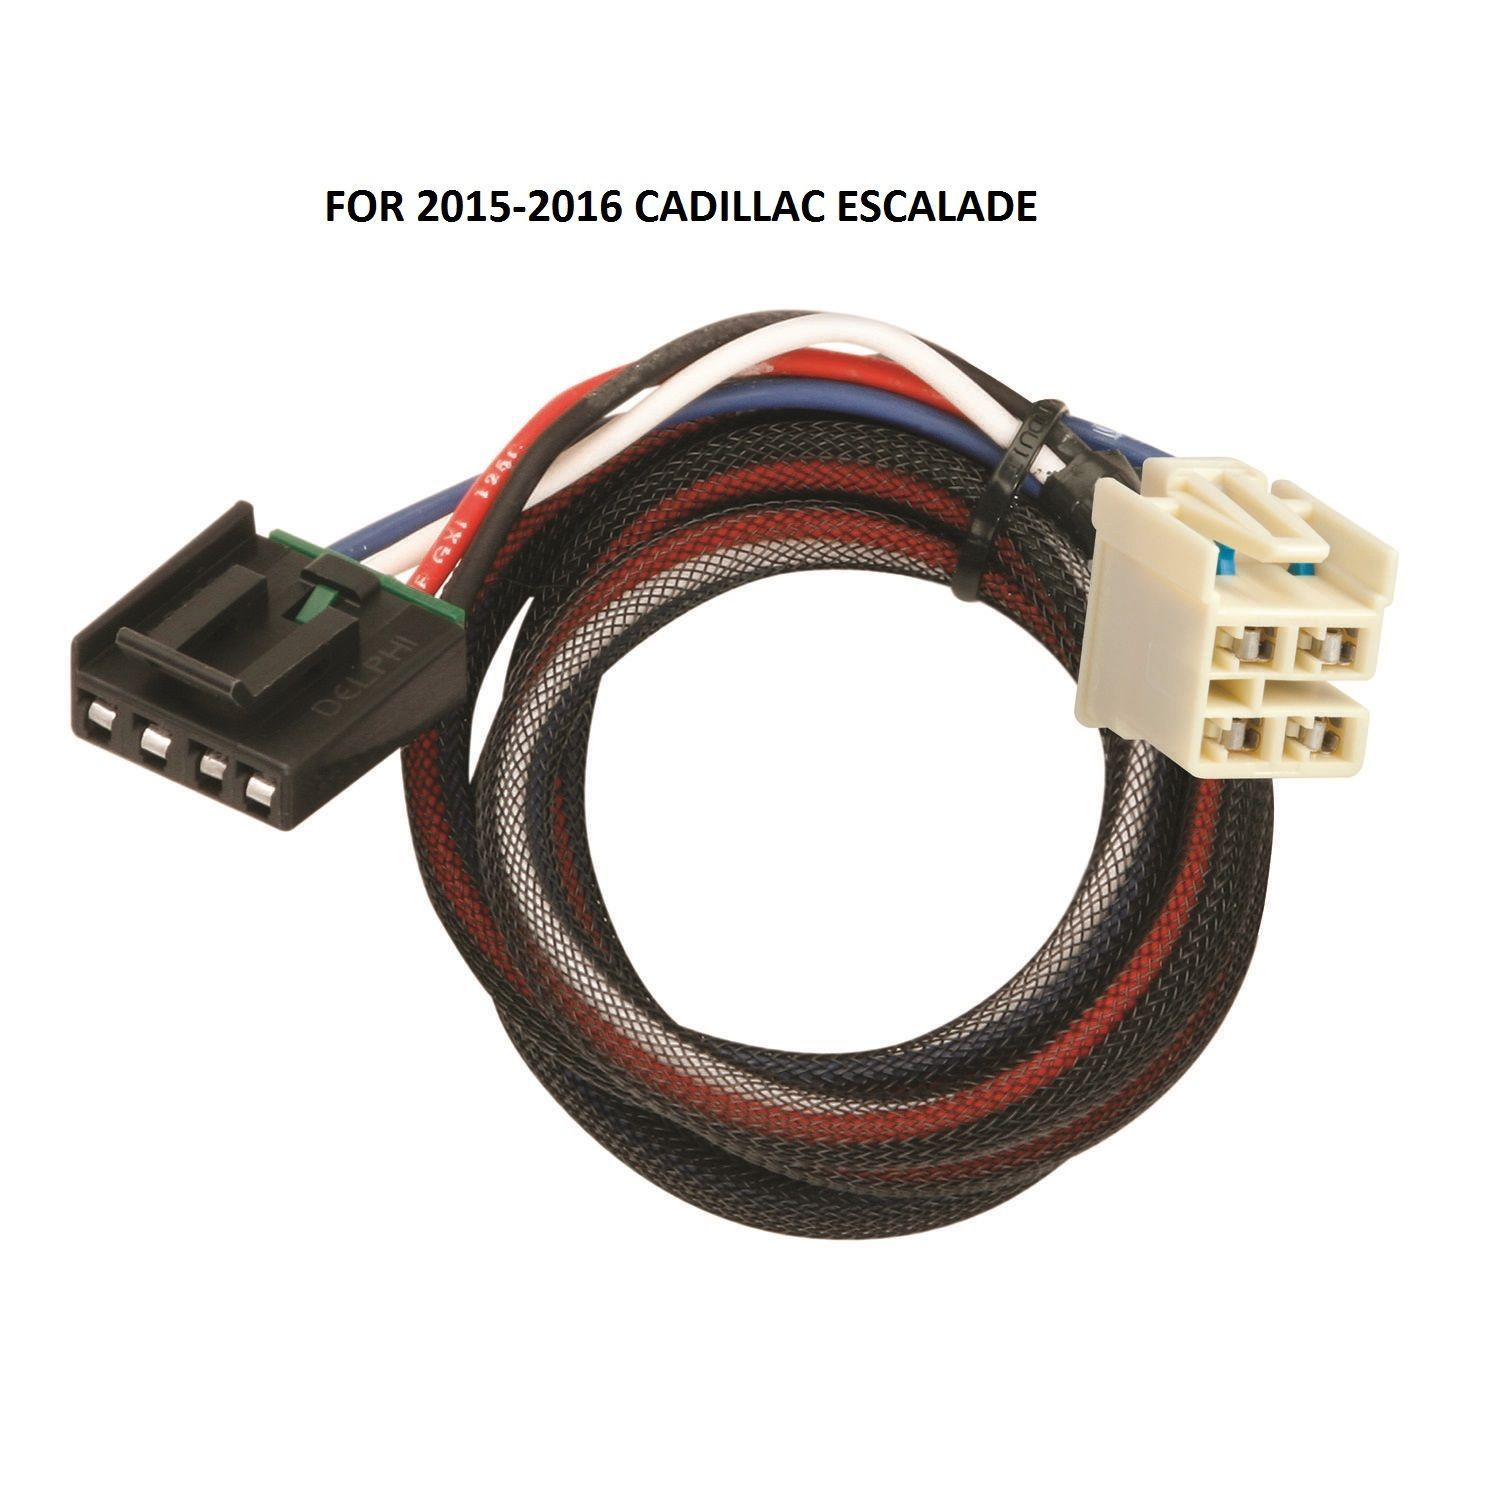 Wiring Harness For 2002 Cadillac Escalade